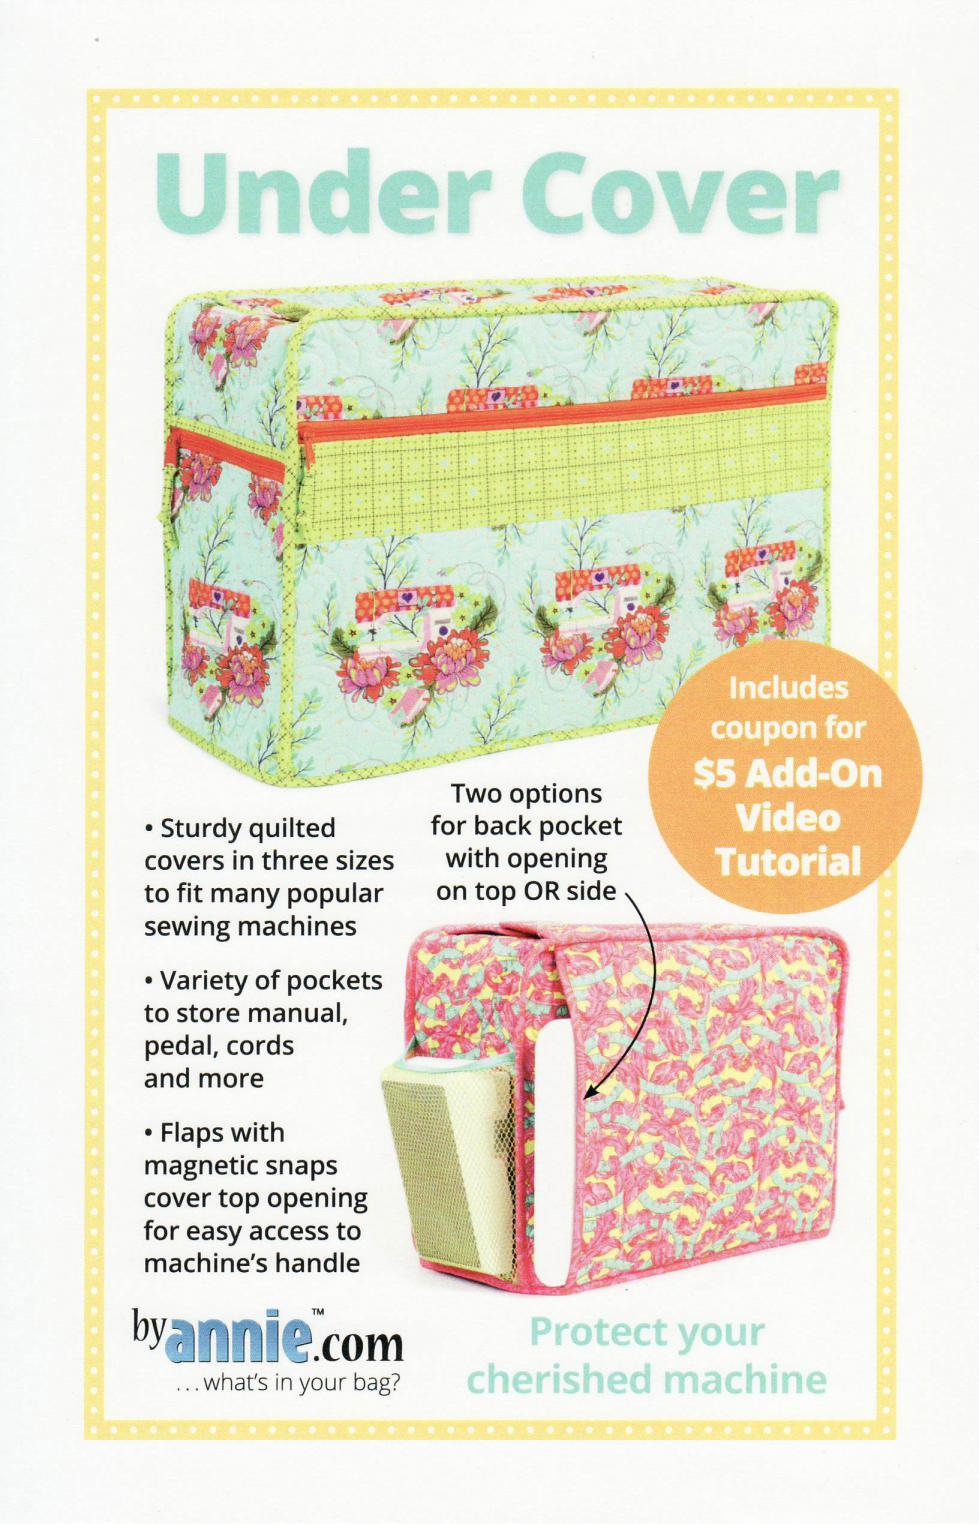 Under Cover sewing machine cover sewing pattern by Annie Unrein